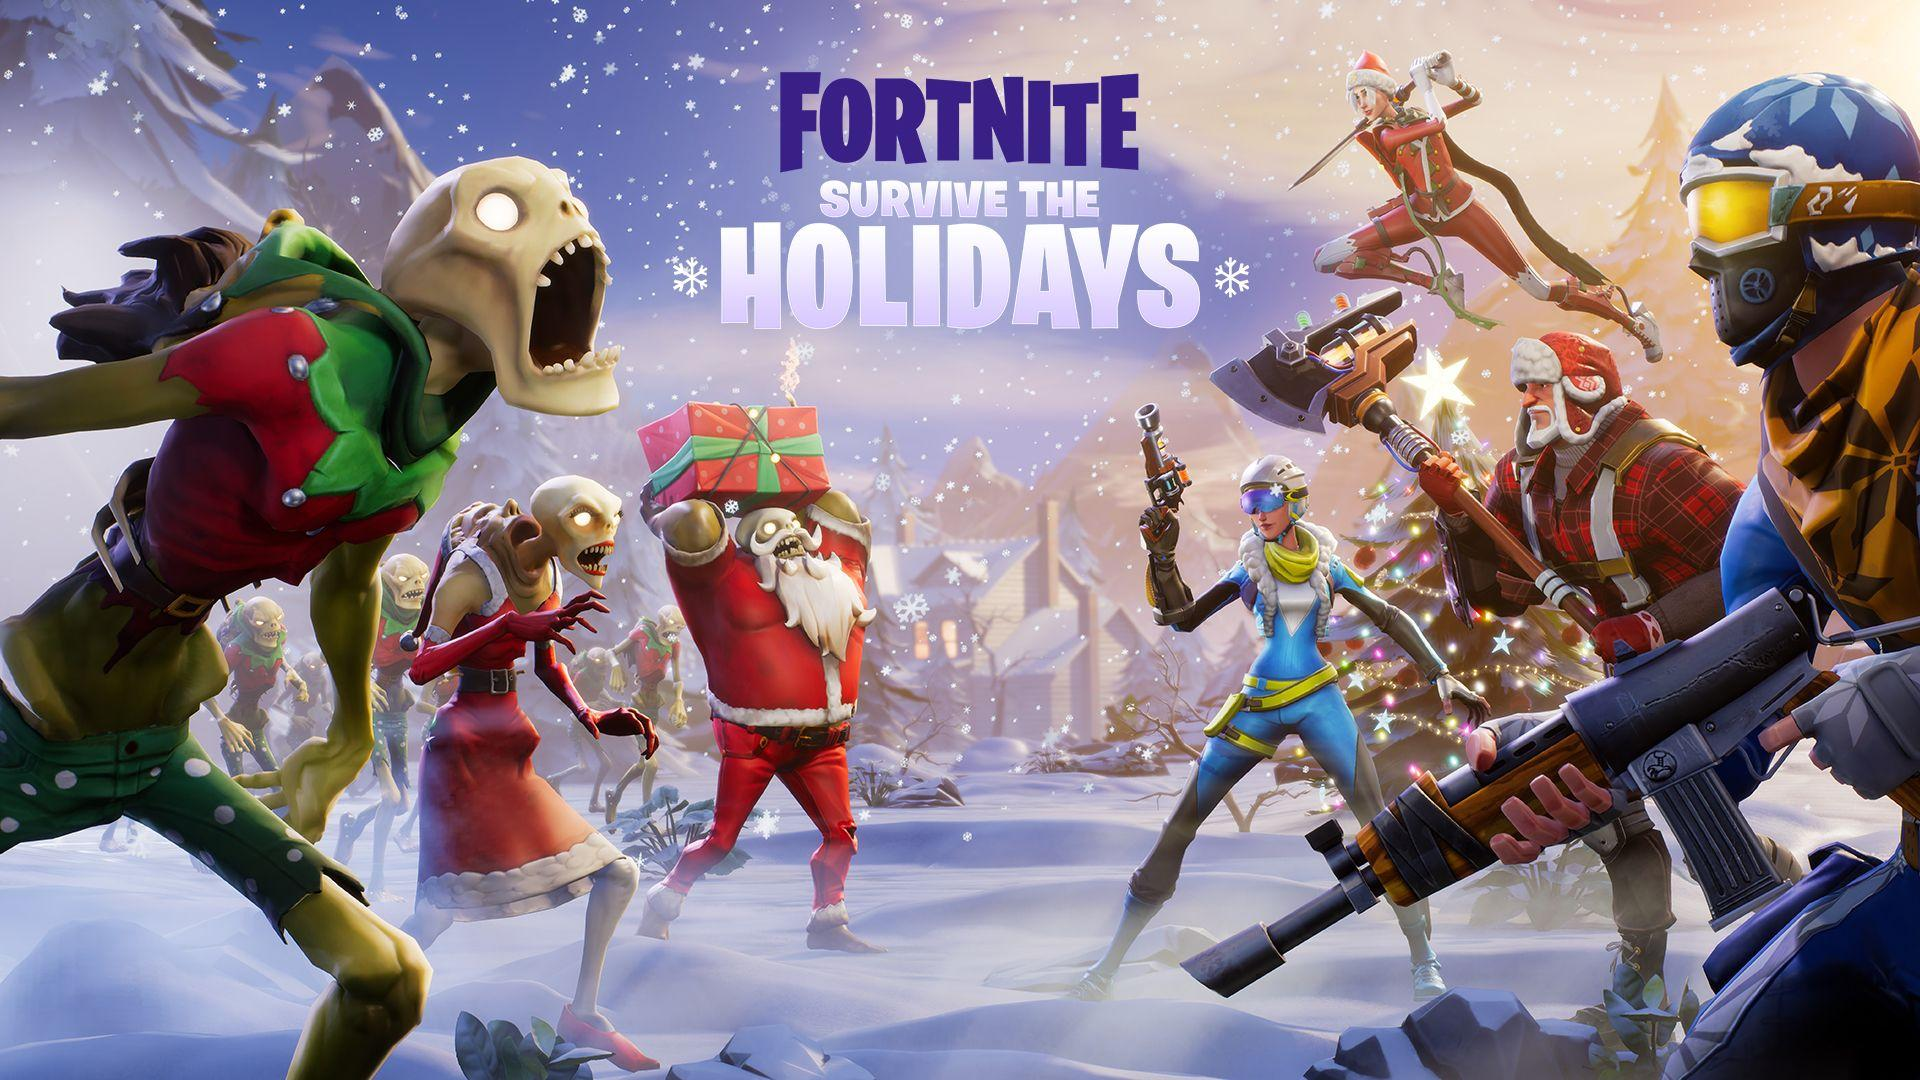 Save the World - Survive the Holidays - Epic Games' Fortnite - Husk Monsters Fortnite Wallpapers